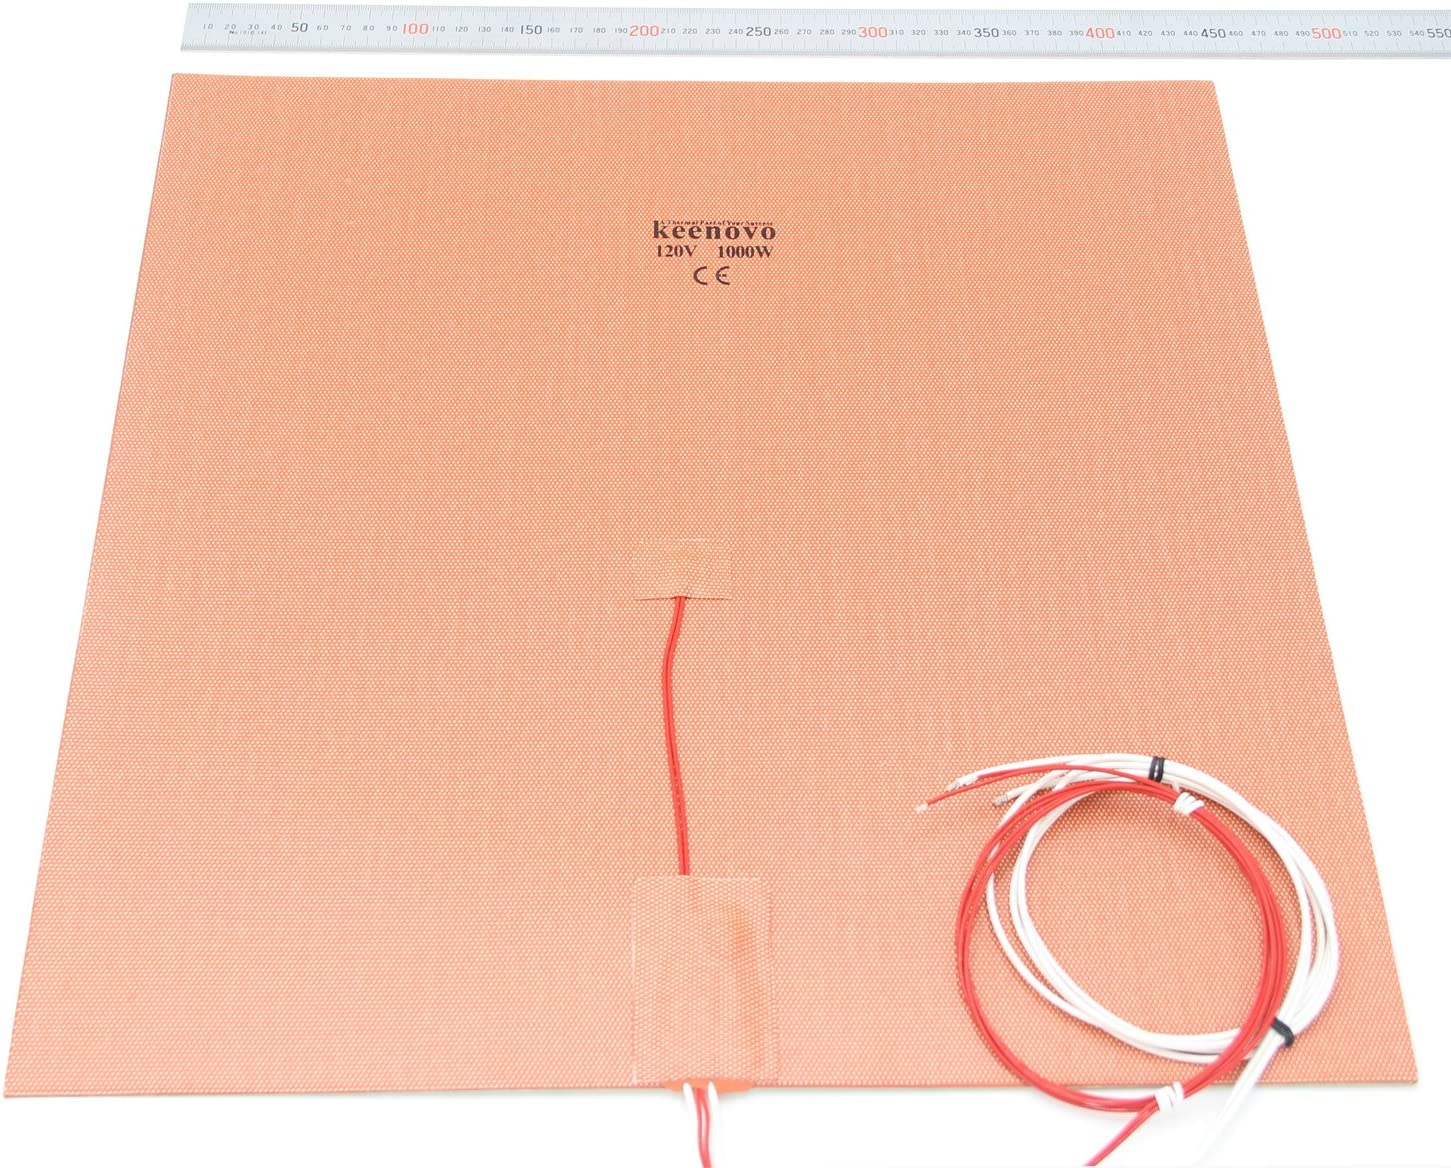 Factory outlet 450mm x Portland Mall KEENOVO Silicone Heater Format Industria Pad Large